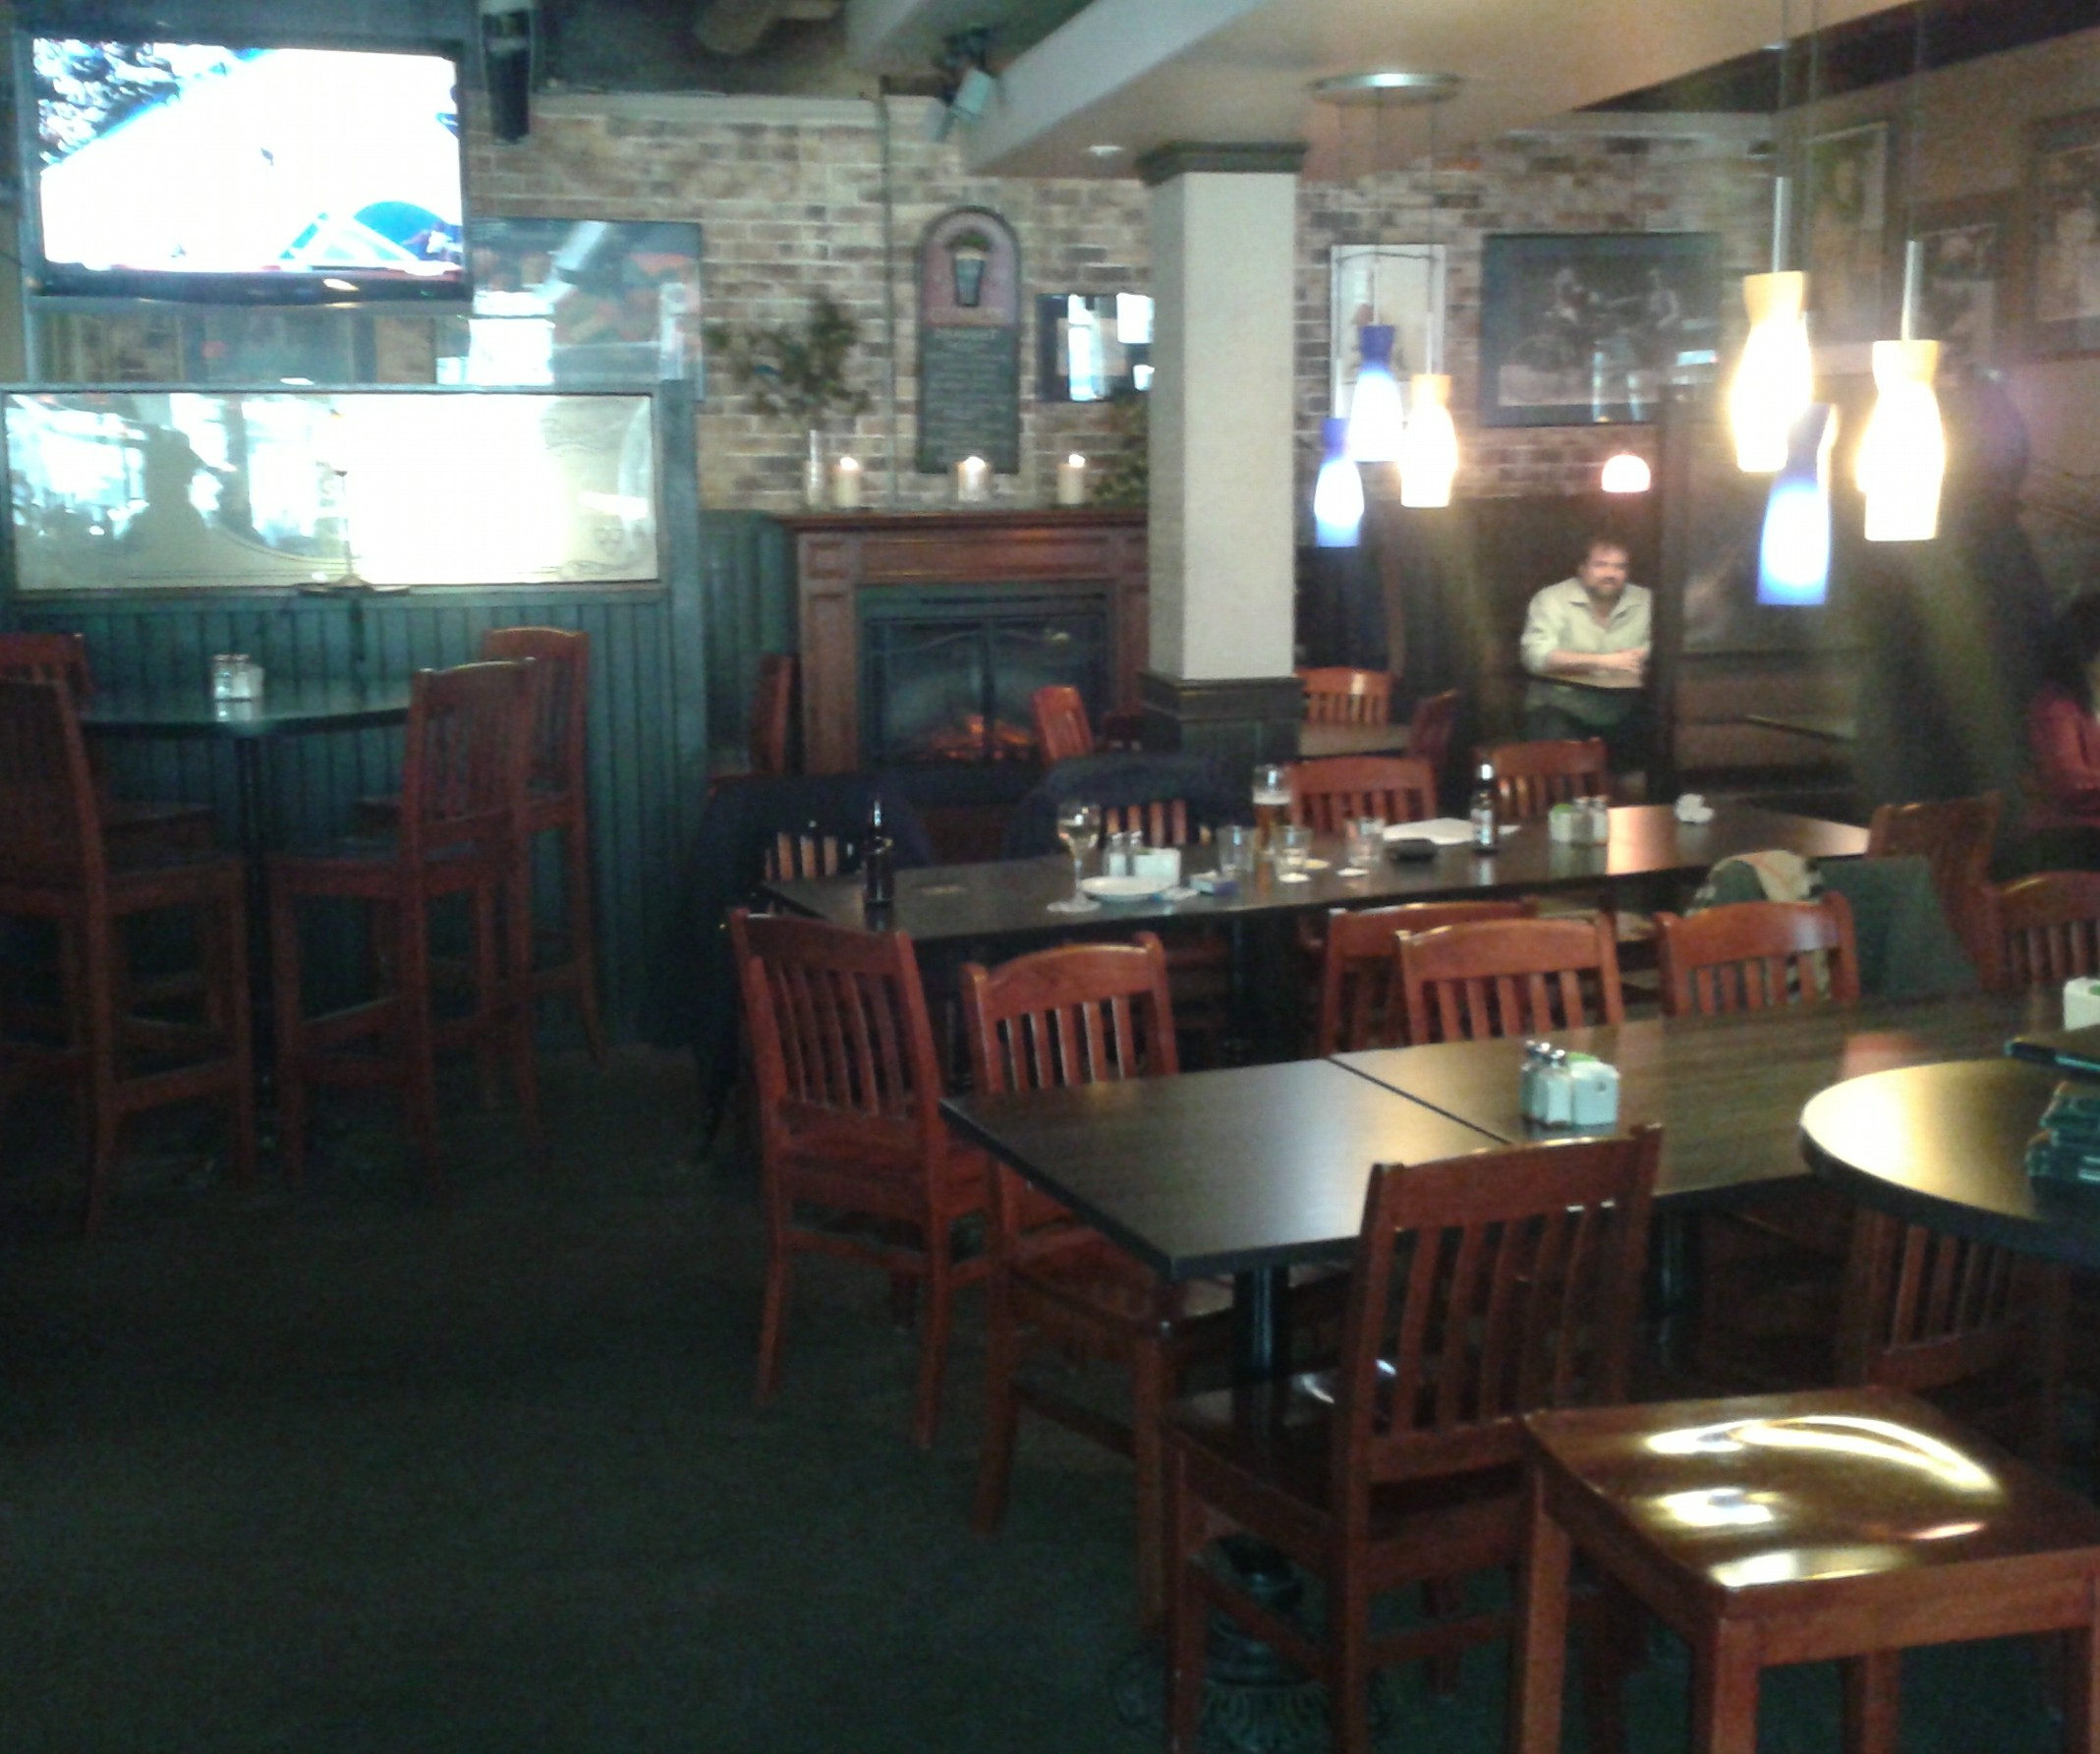 Picture of accessible space inside restaurant.